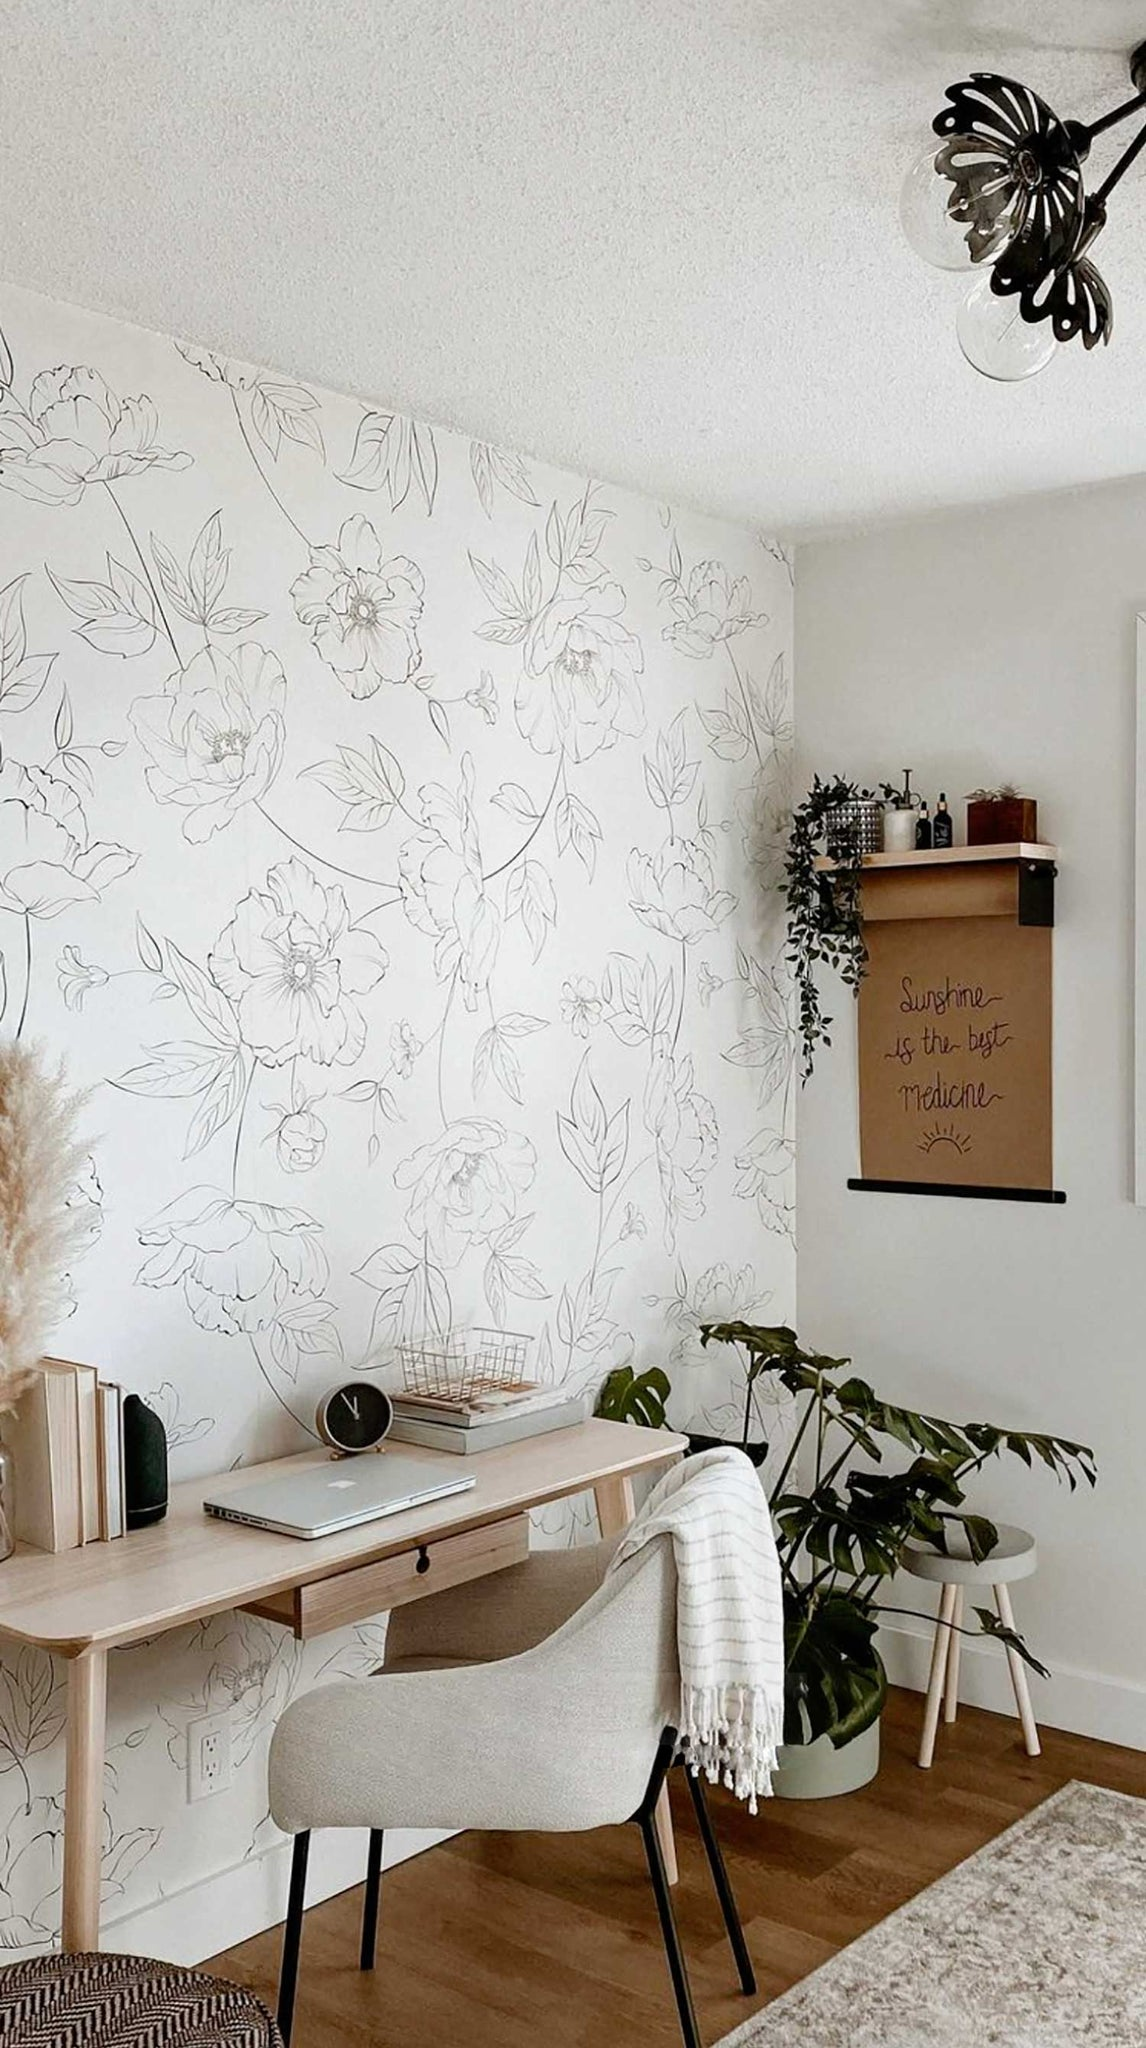 Modern boho style home office interior with floral wallpaper accent wall behind desk